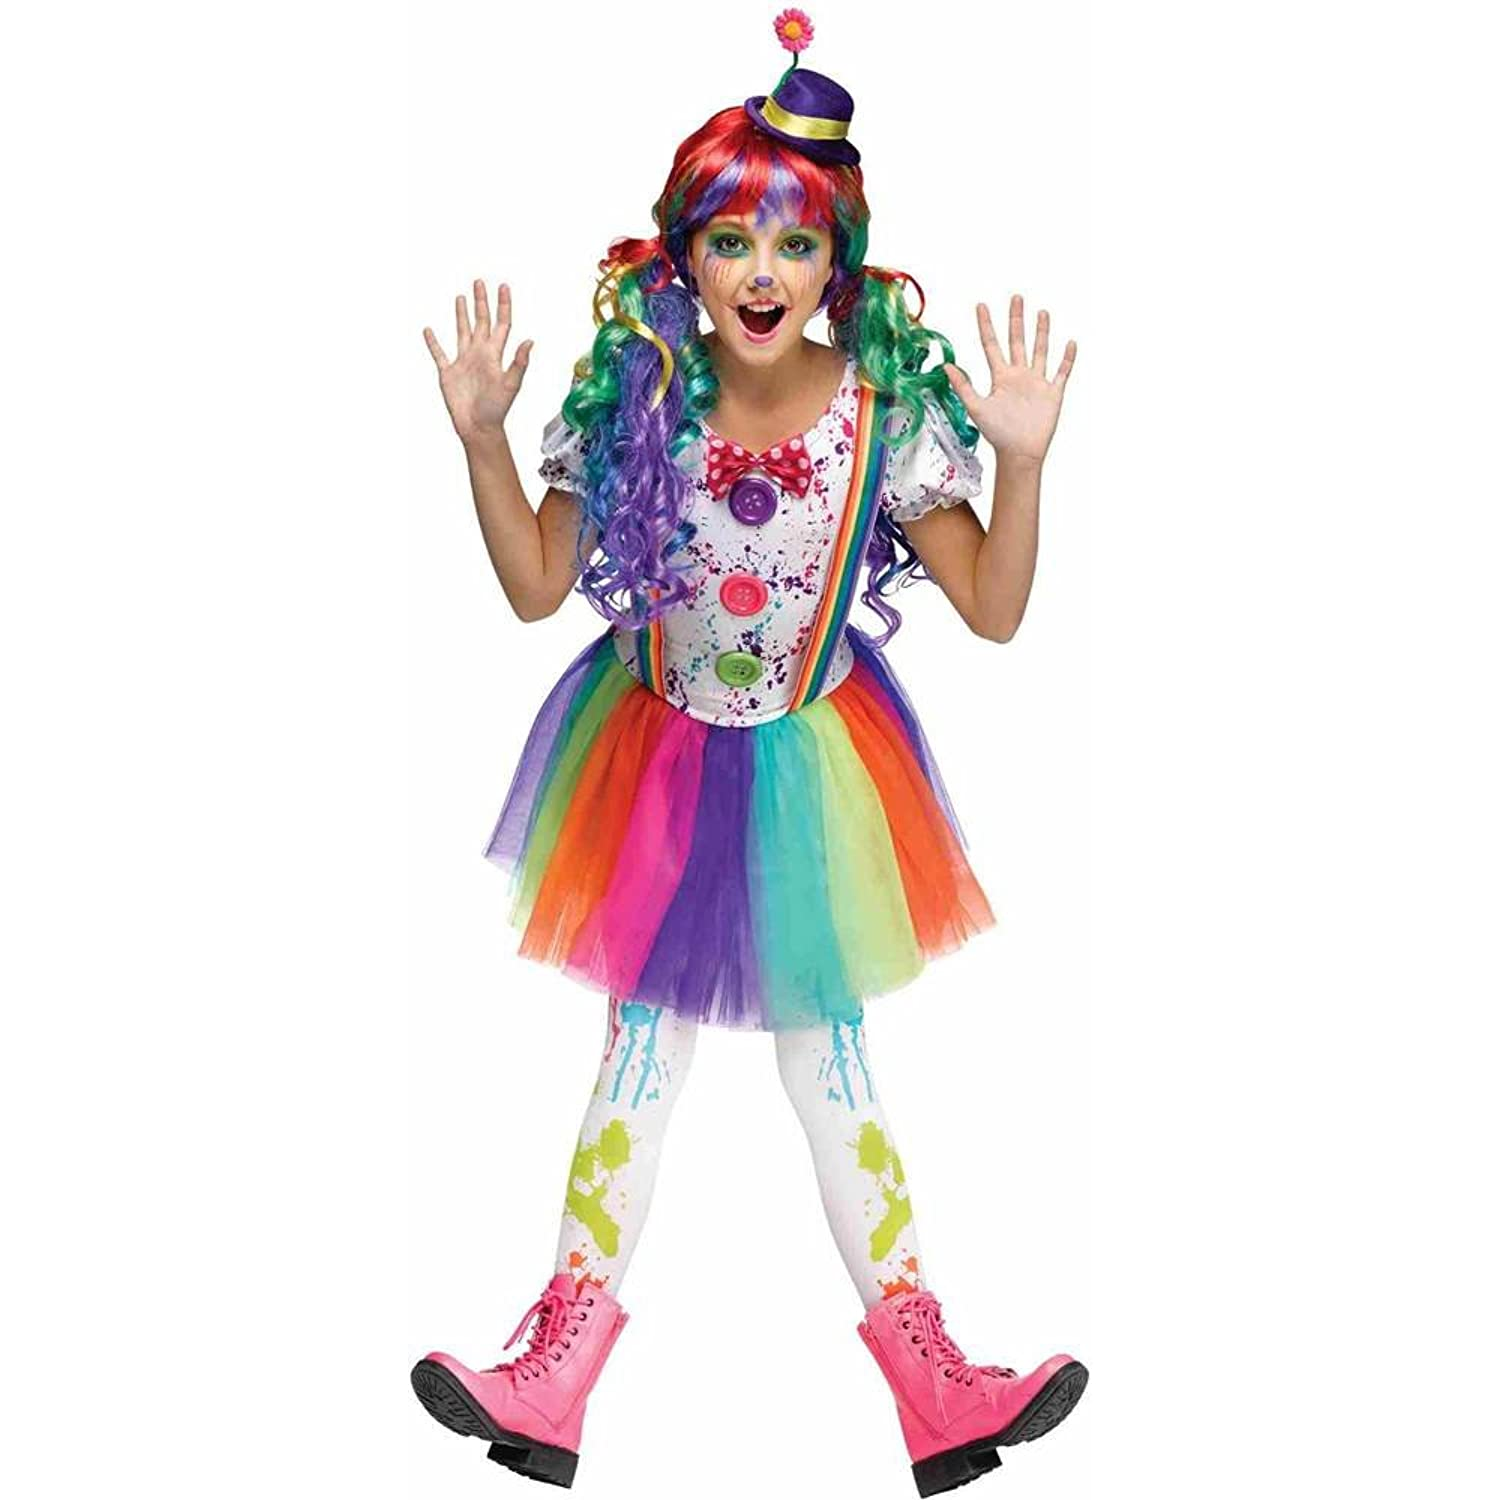 Amazon.com: Girls Crazy Color Clown Costume: Toys & Games